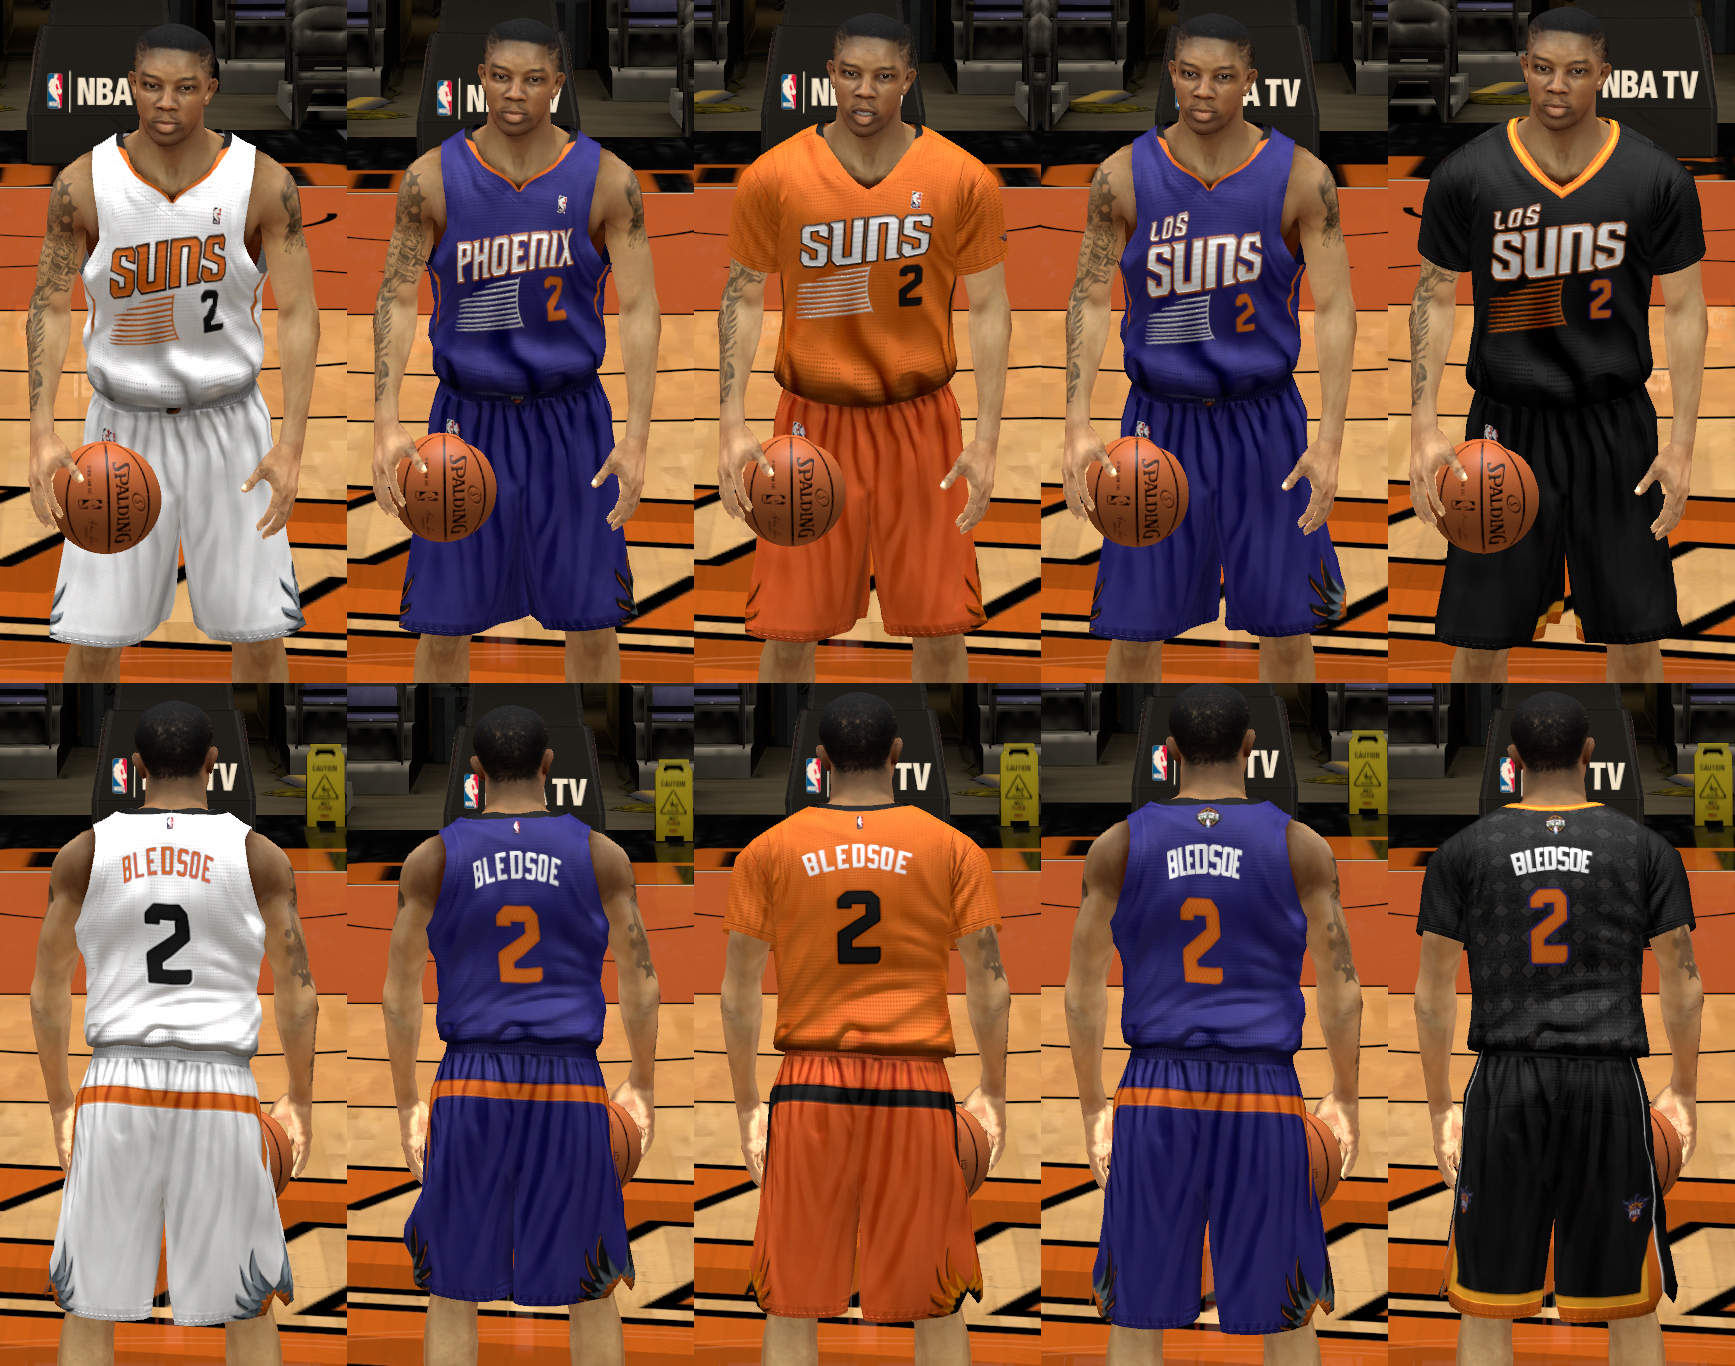 916d80134b9 NLSC Forum • Downloads - 2015 Phoenix Suns Uniforms